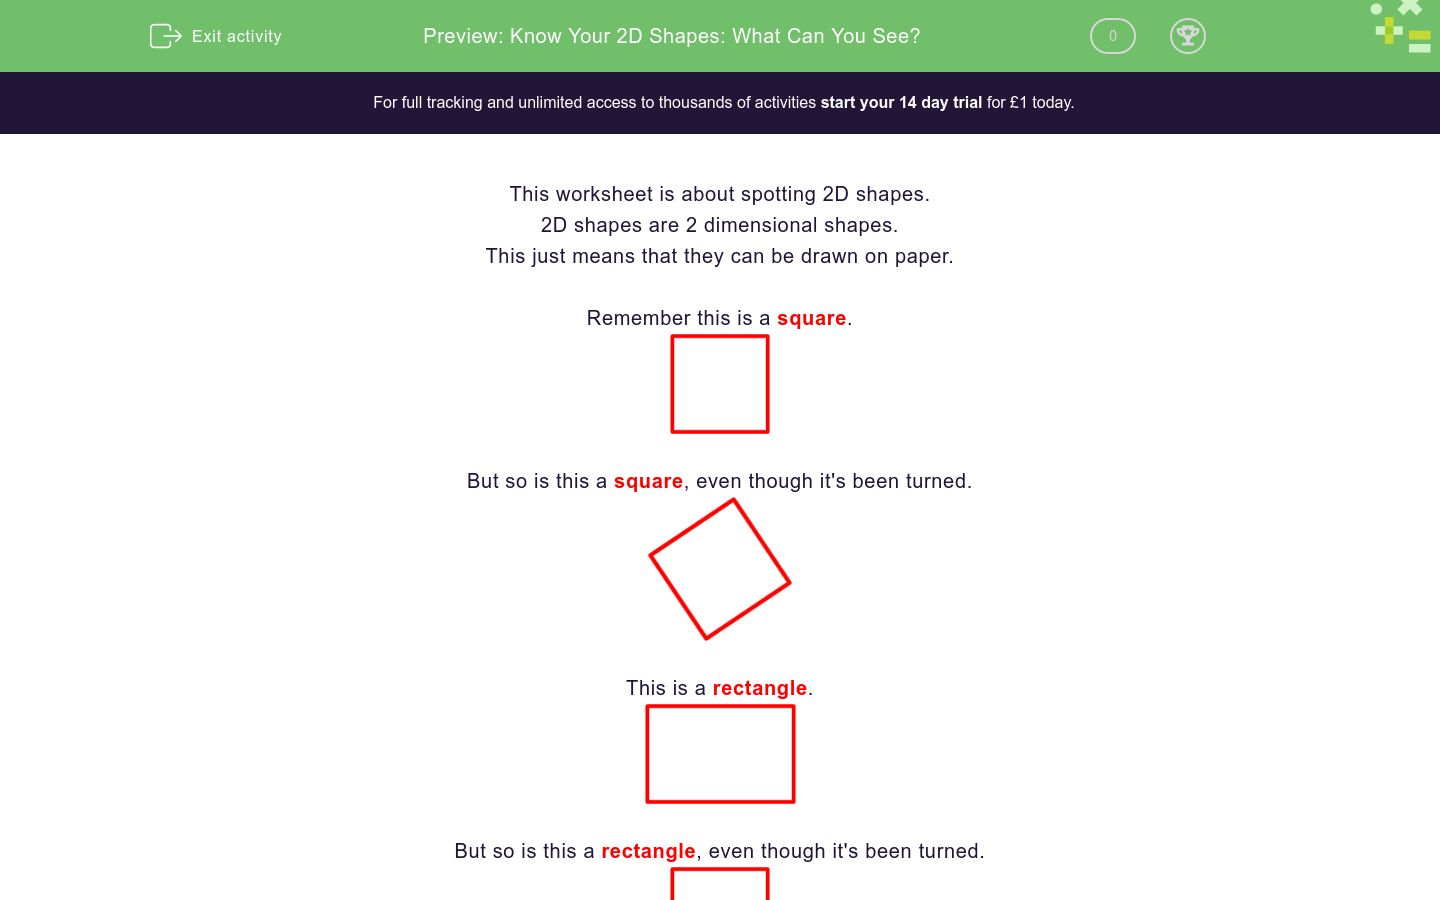 'Know Your 2D Shapes: What Can You See?' worksheet